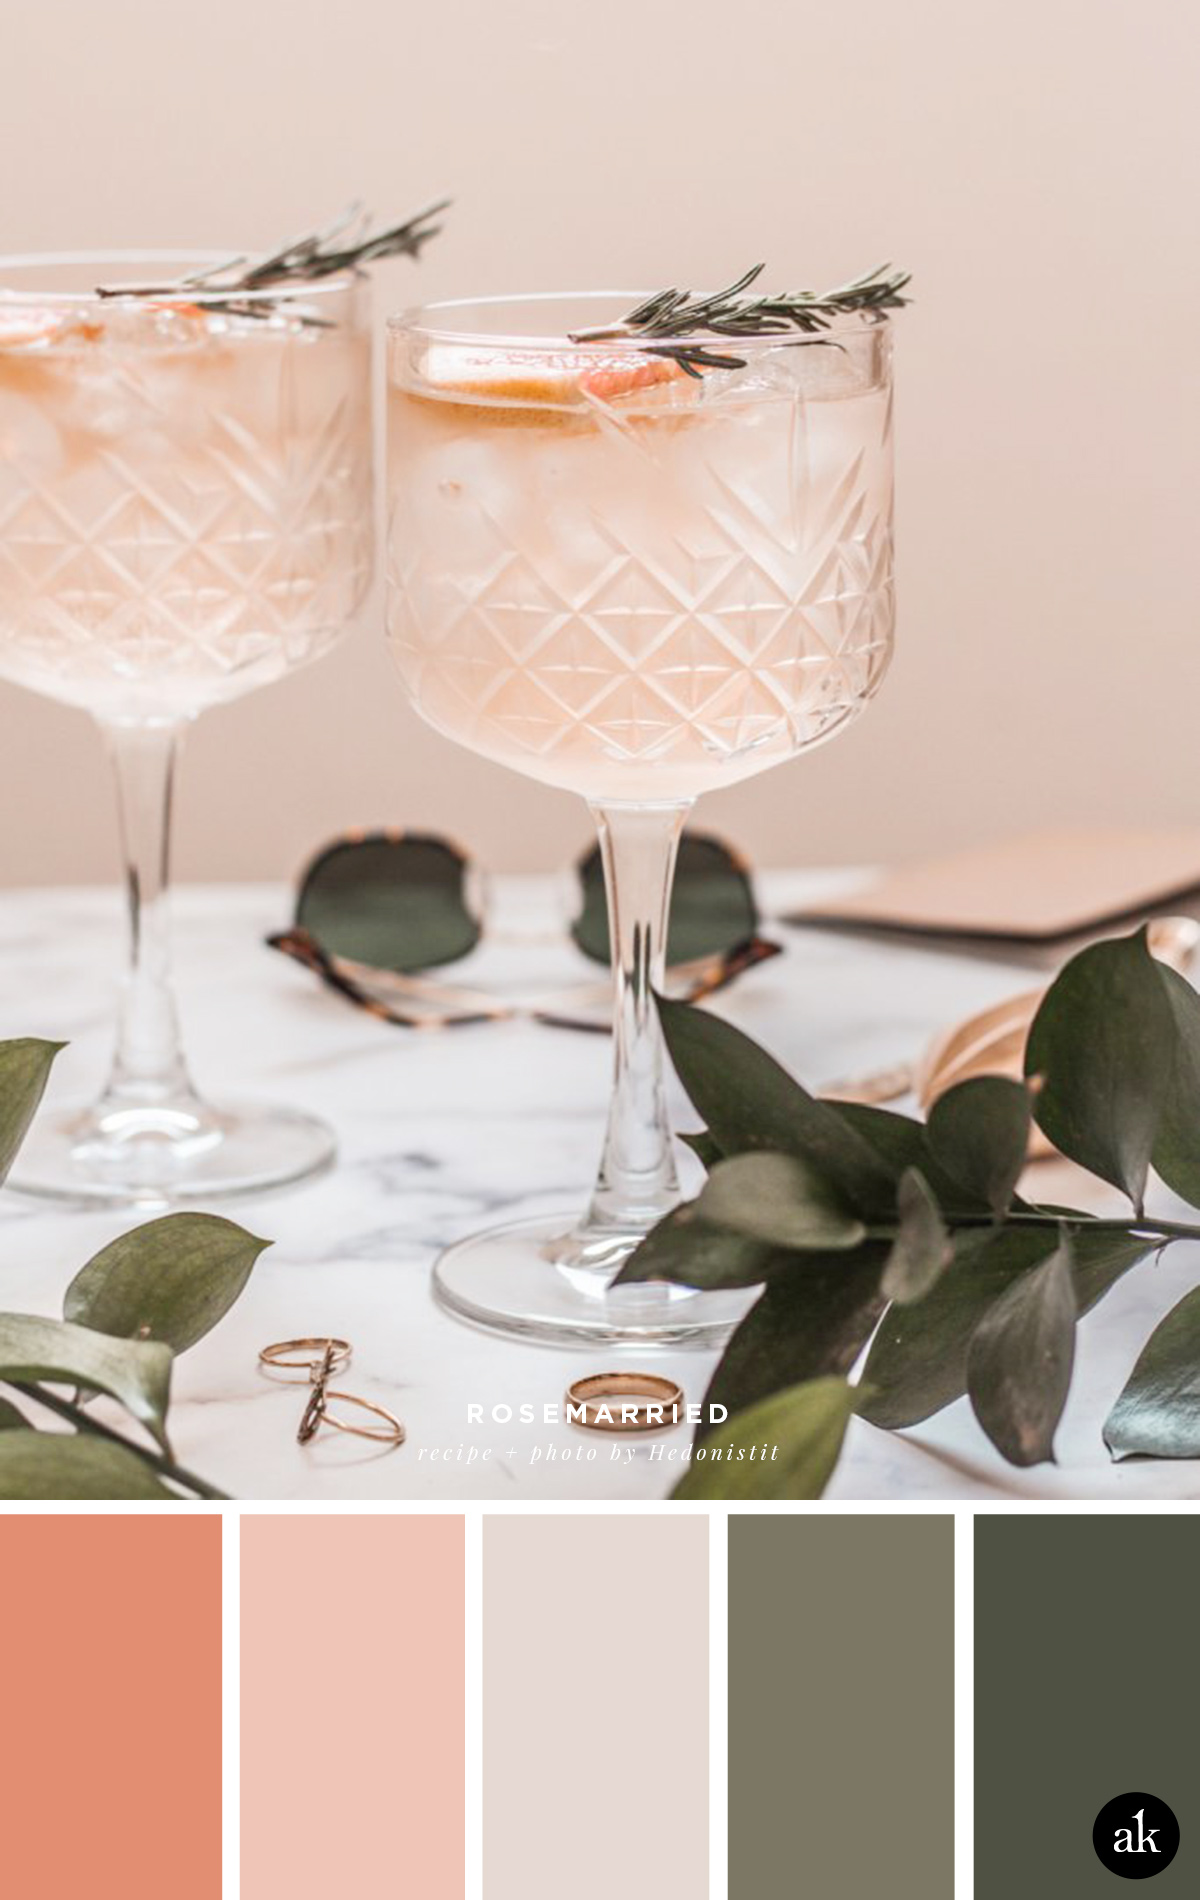 a grapefruit-and-rosemary-cocktail-inspired color palette | grapefruit, light peachy taupe, olive green | photo and recipe by Hedonistit